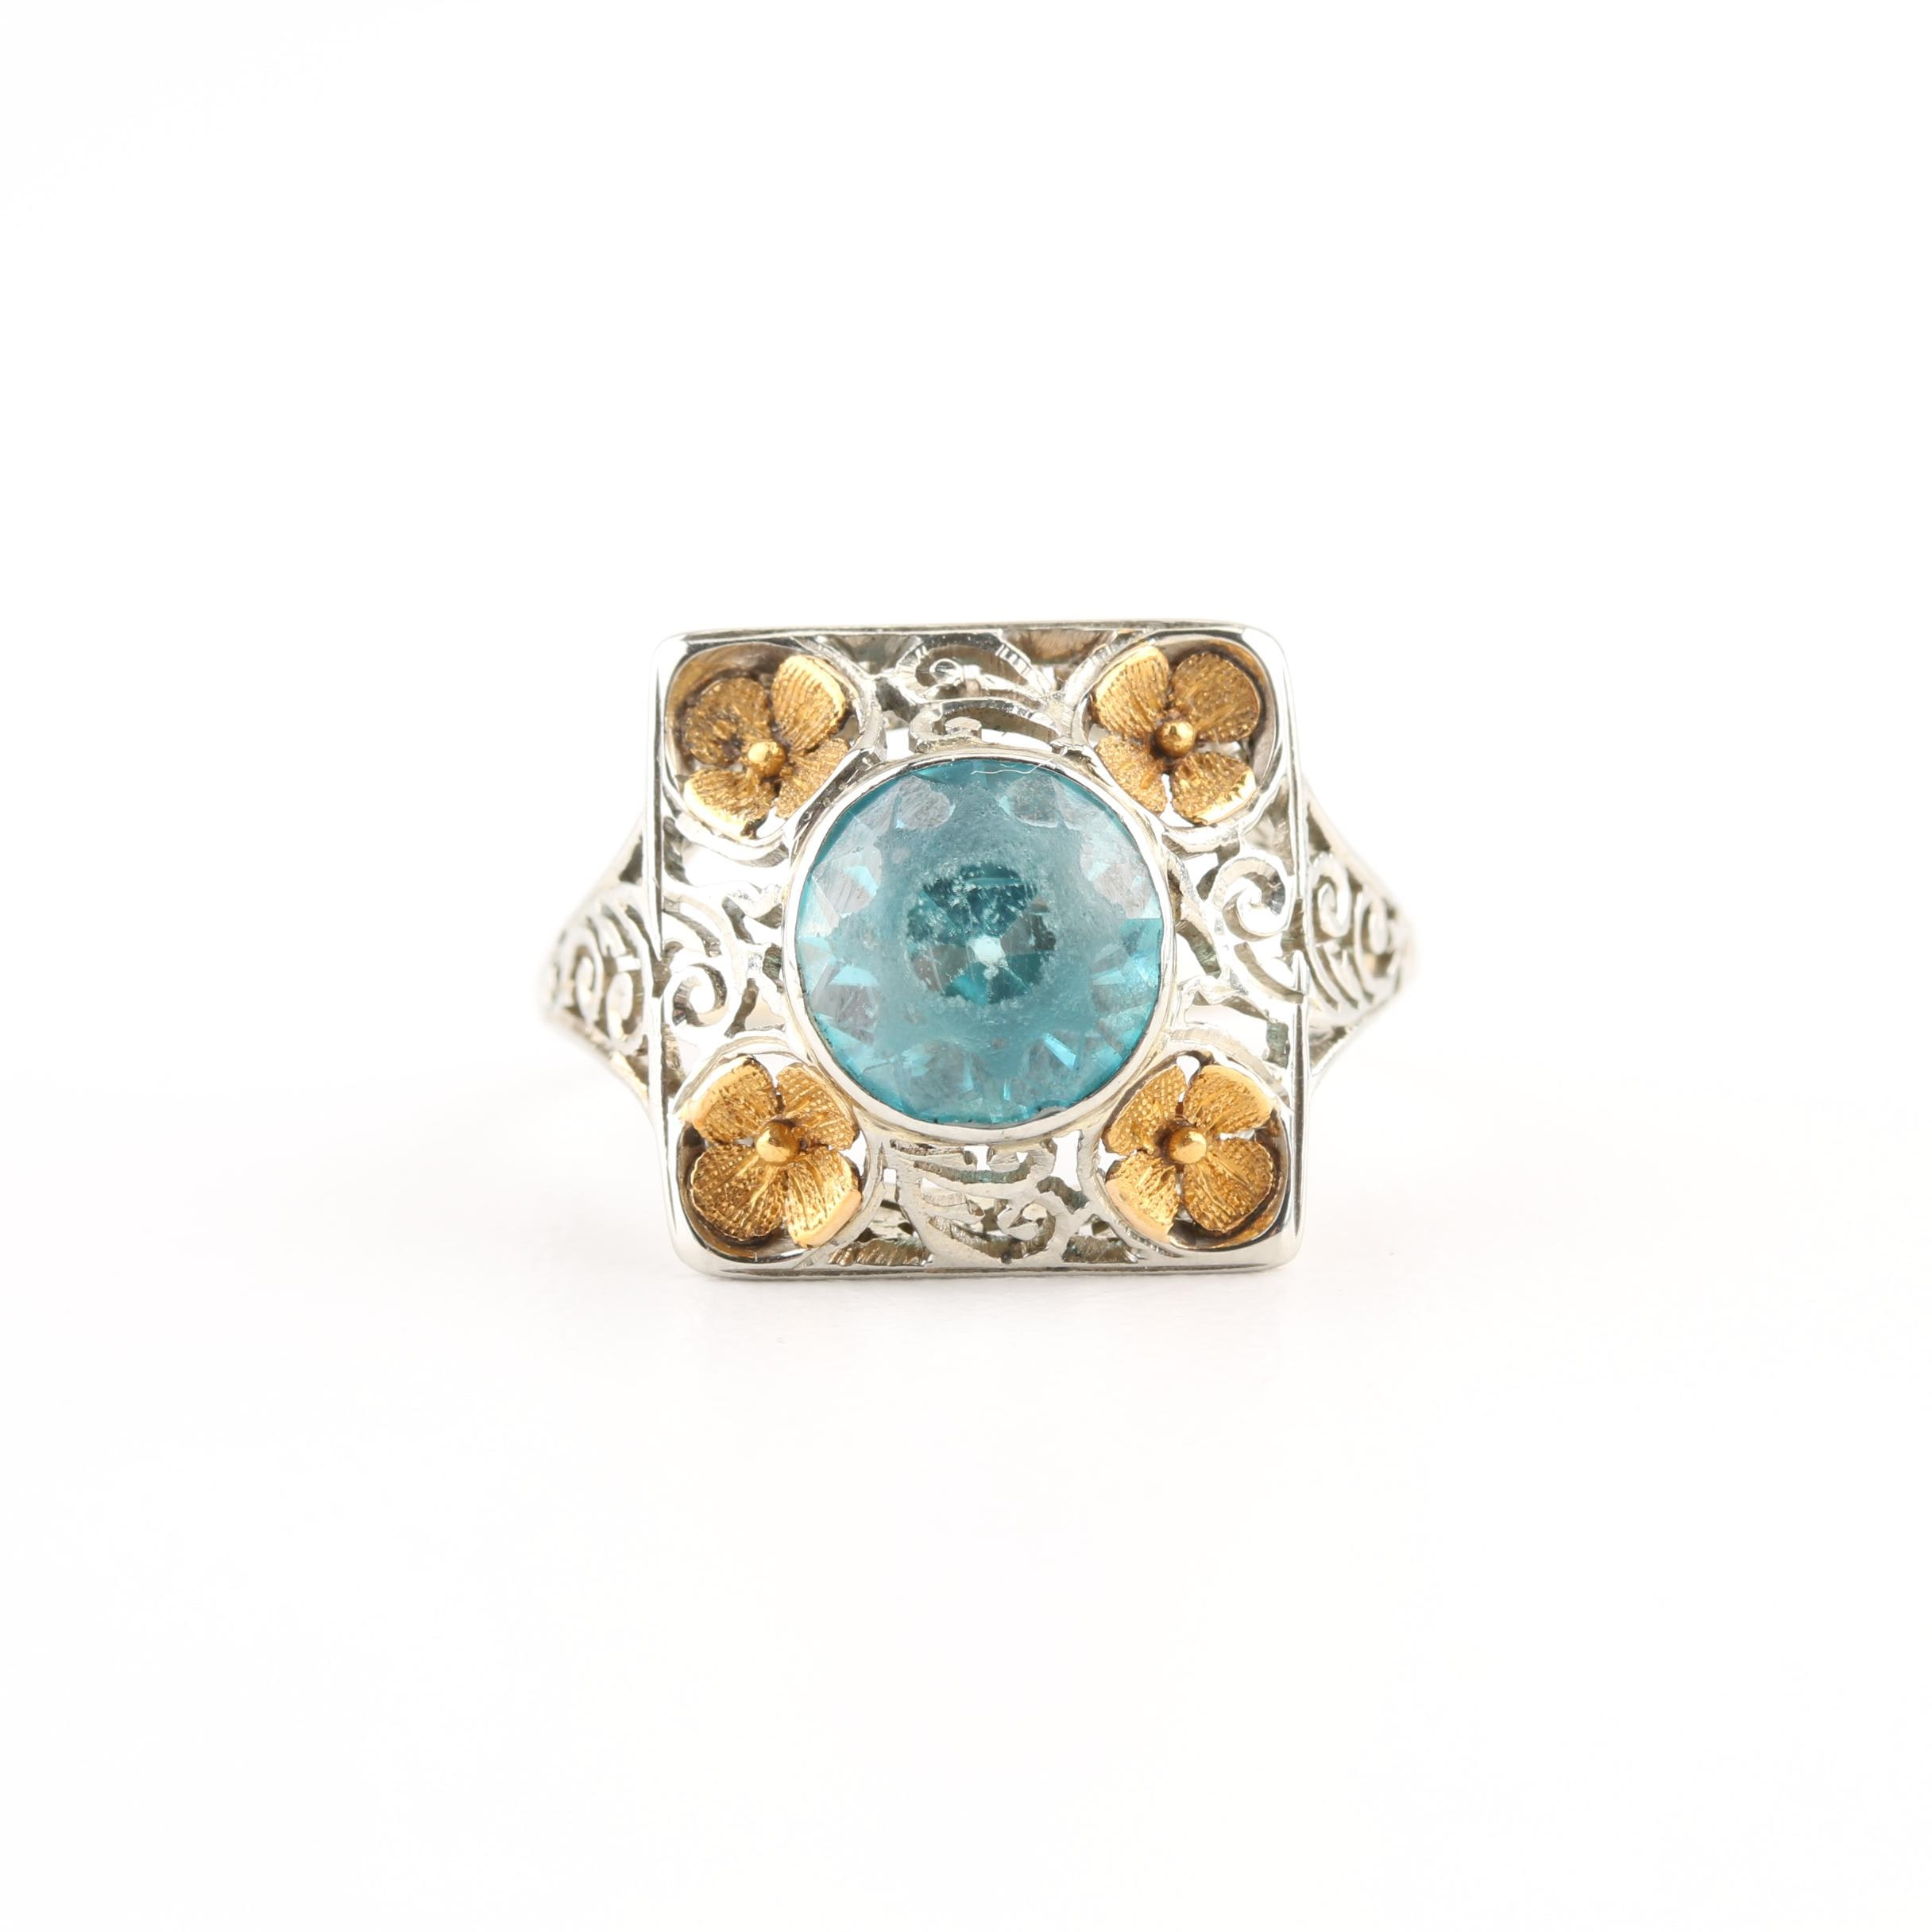 18K White Gold Blue Zircon Ring with Yellow Gold Floral Motif Accents